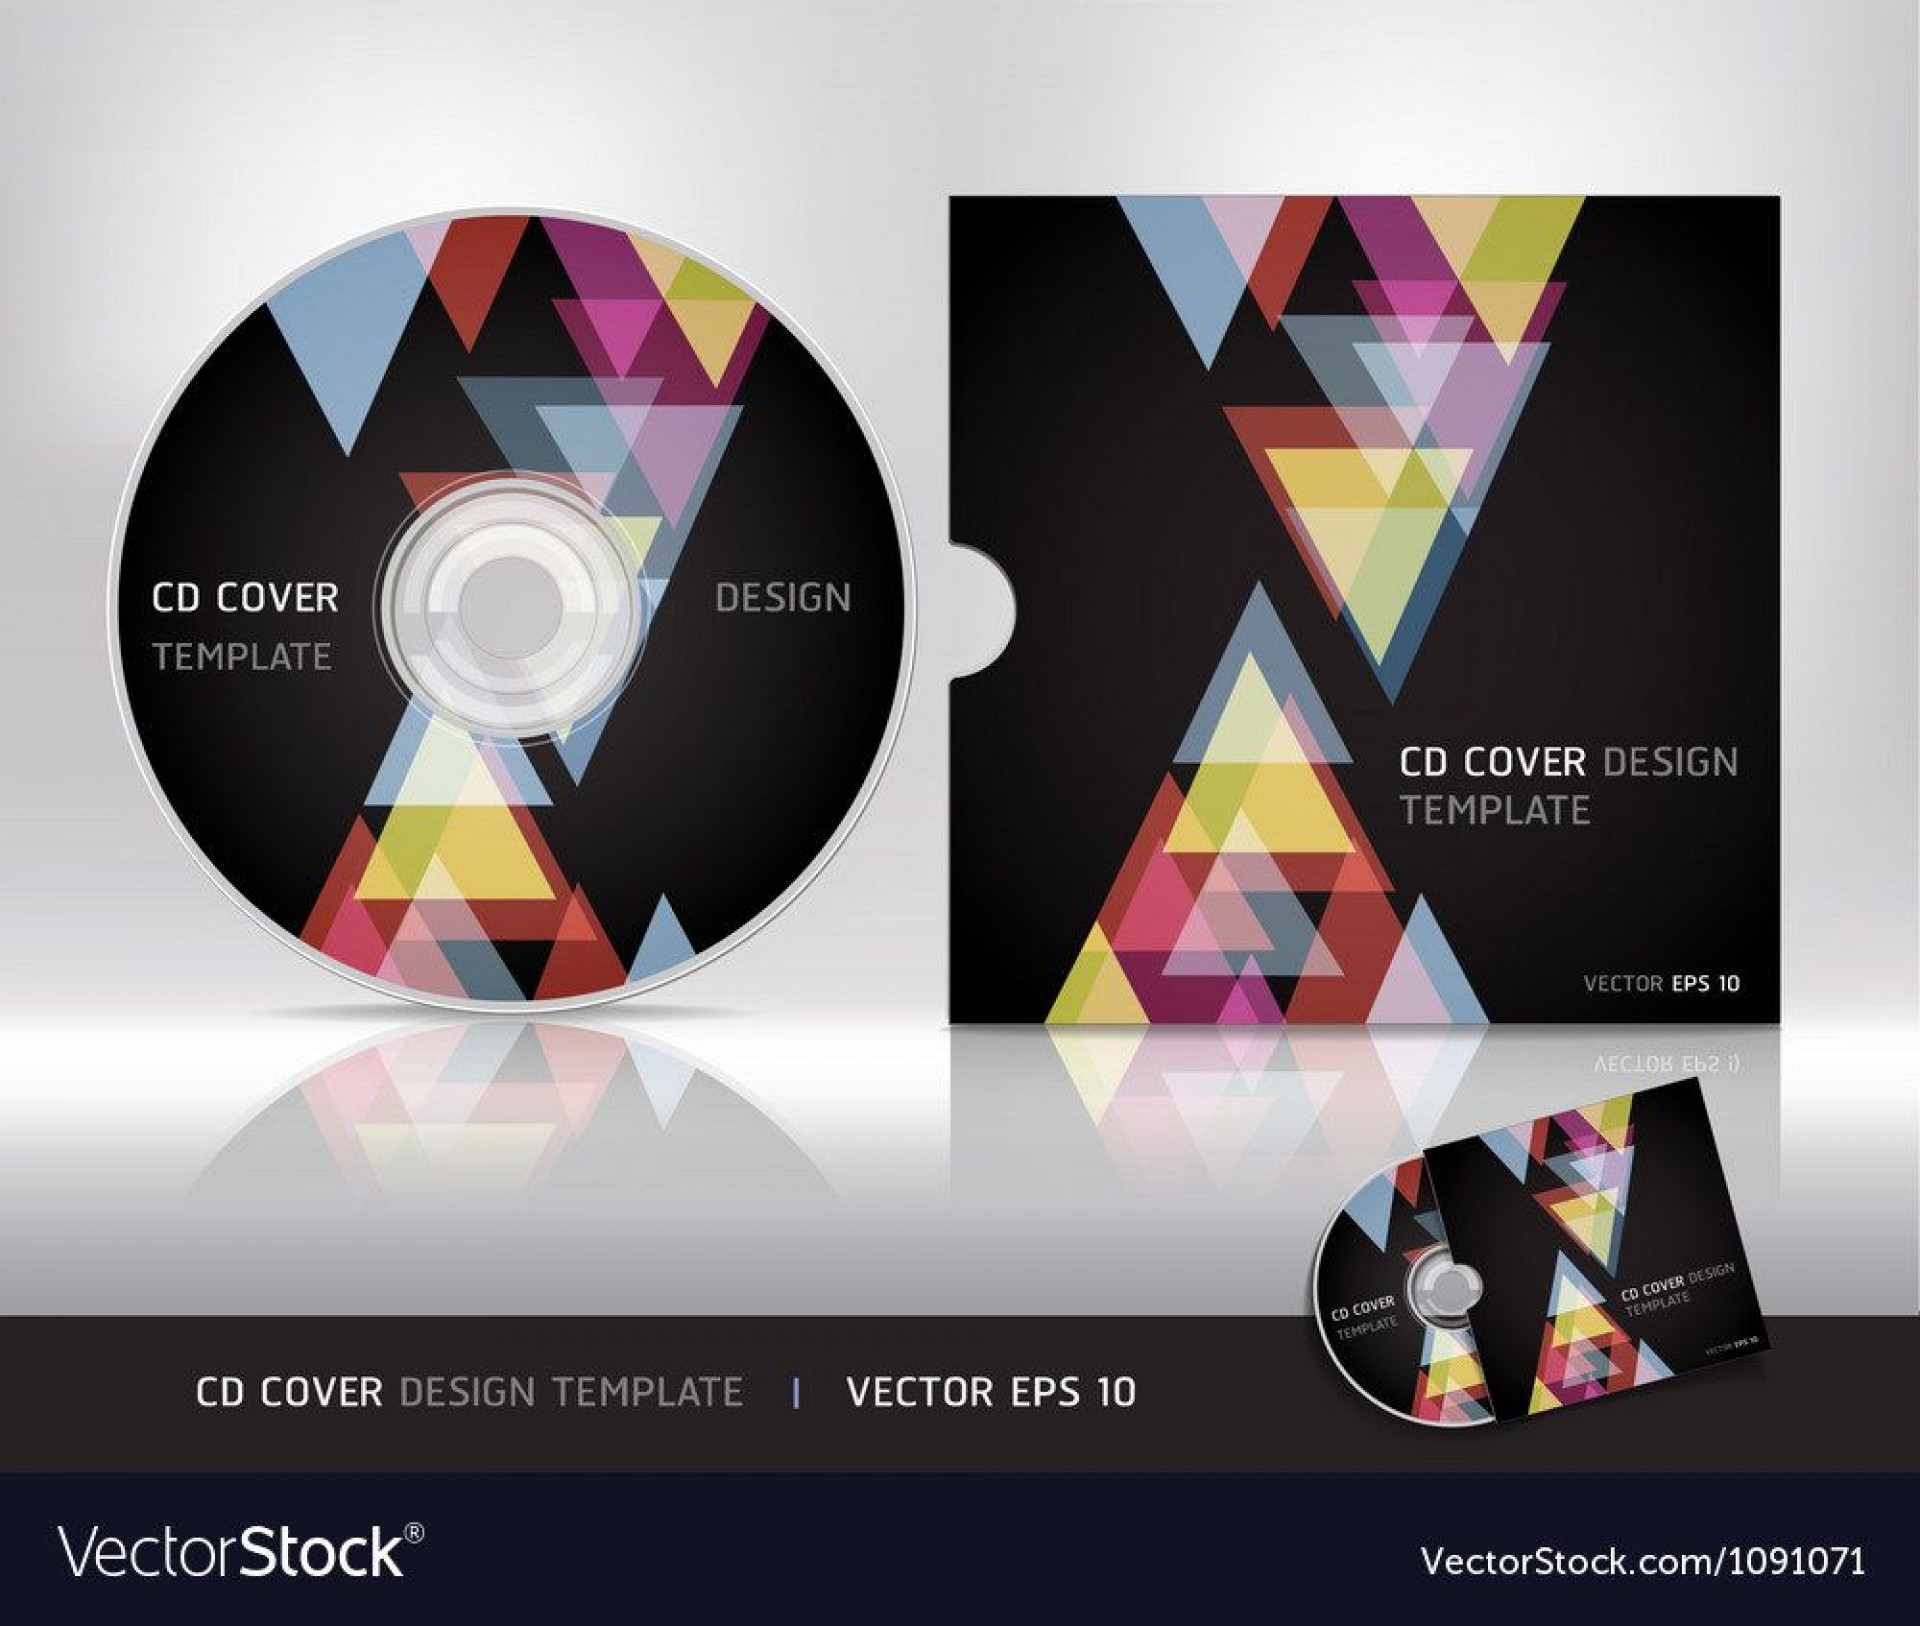 007 Fearsome Cd Cover Design Template Inspiration  Free Vector Illustration Word Psd Download1920